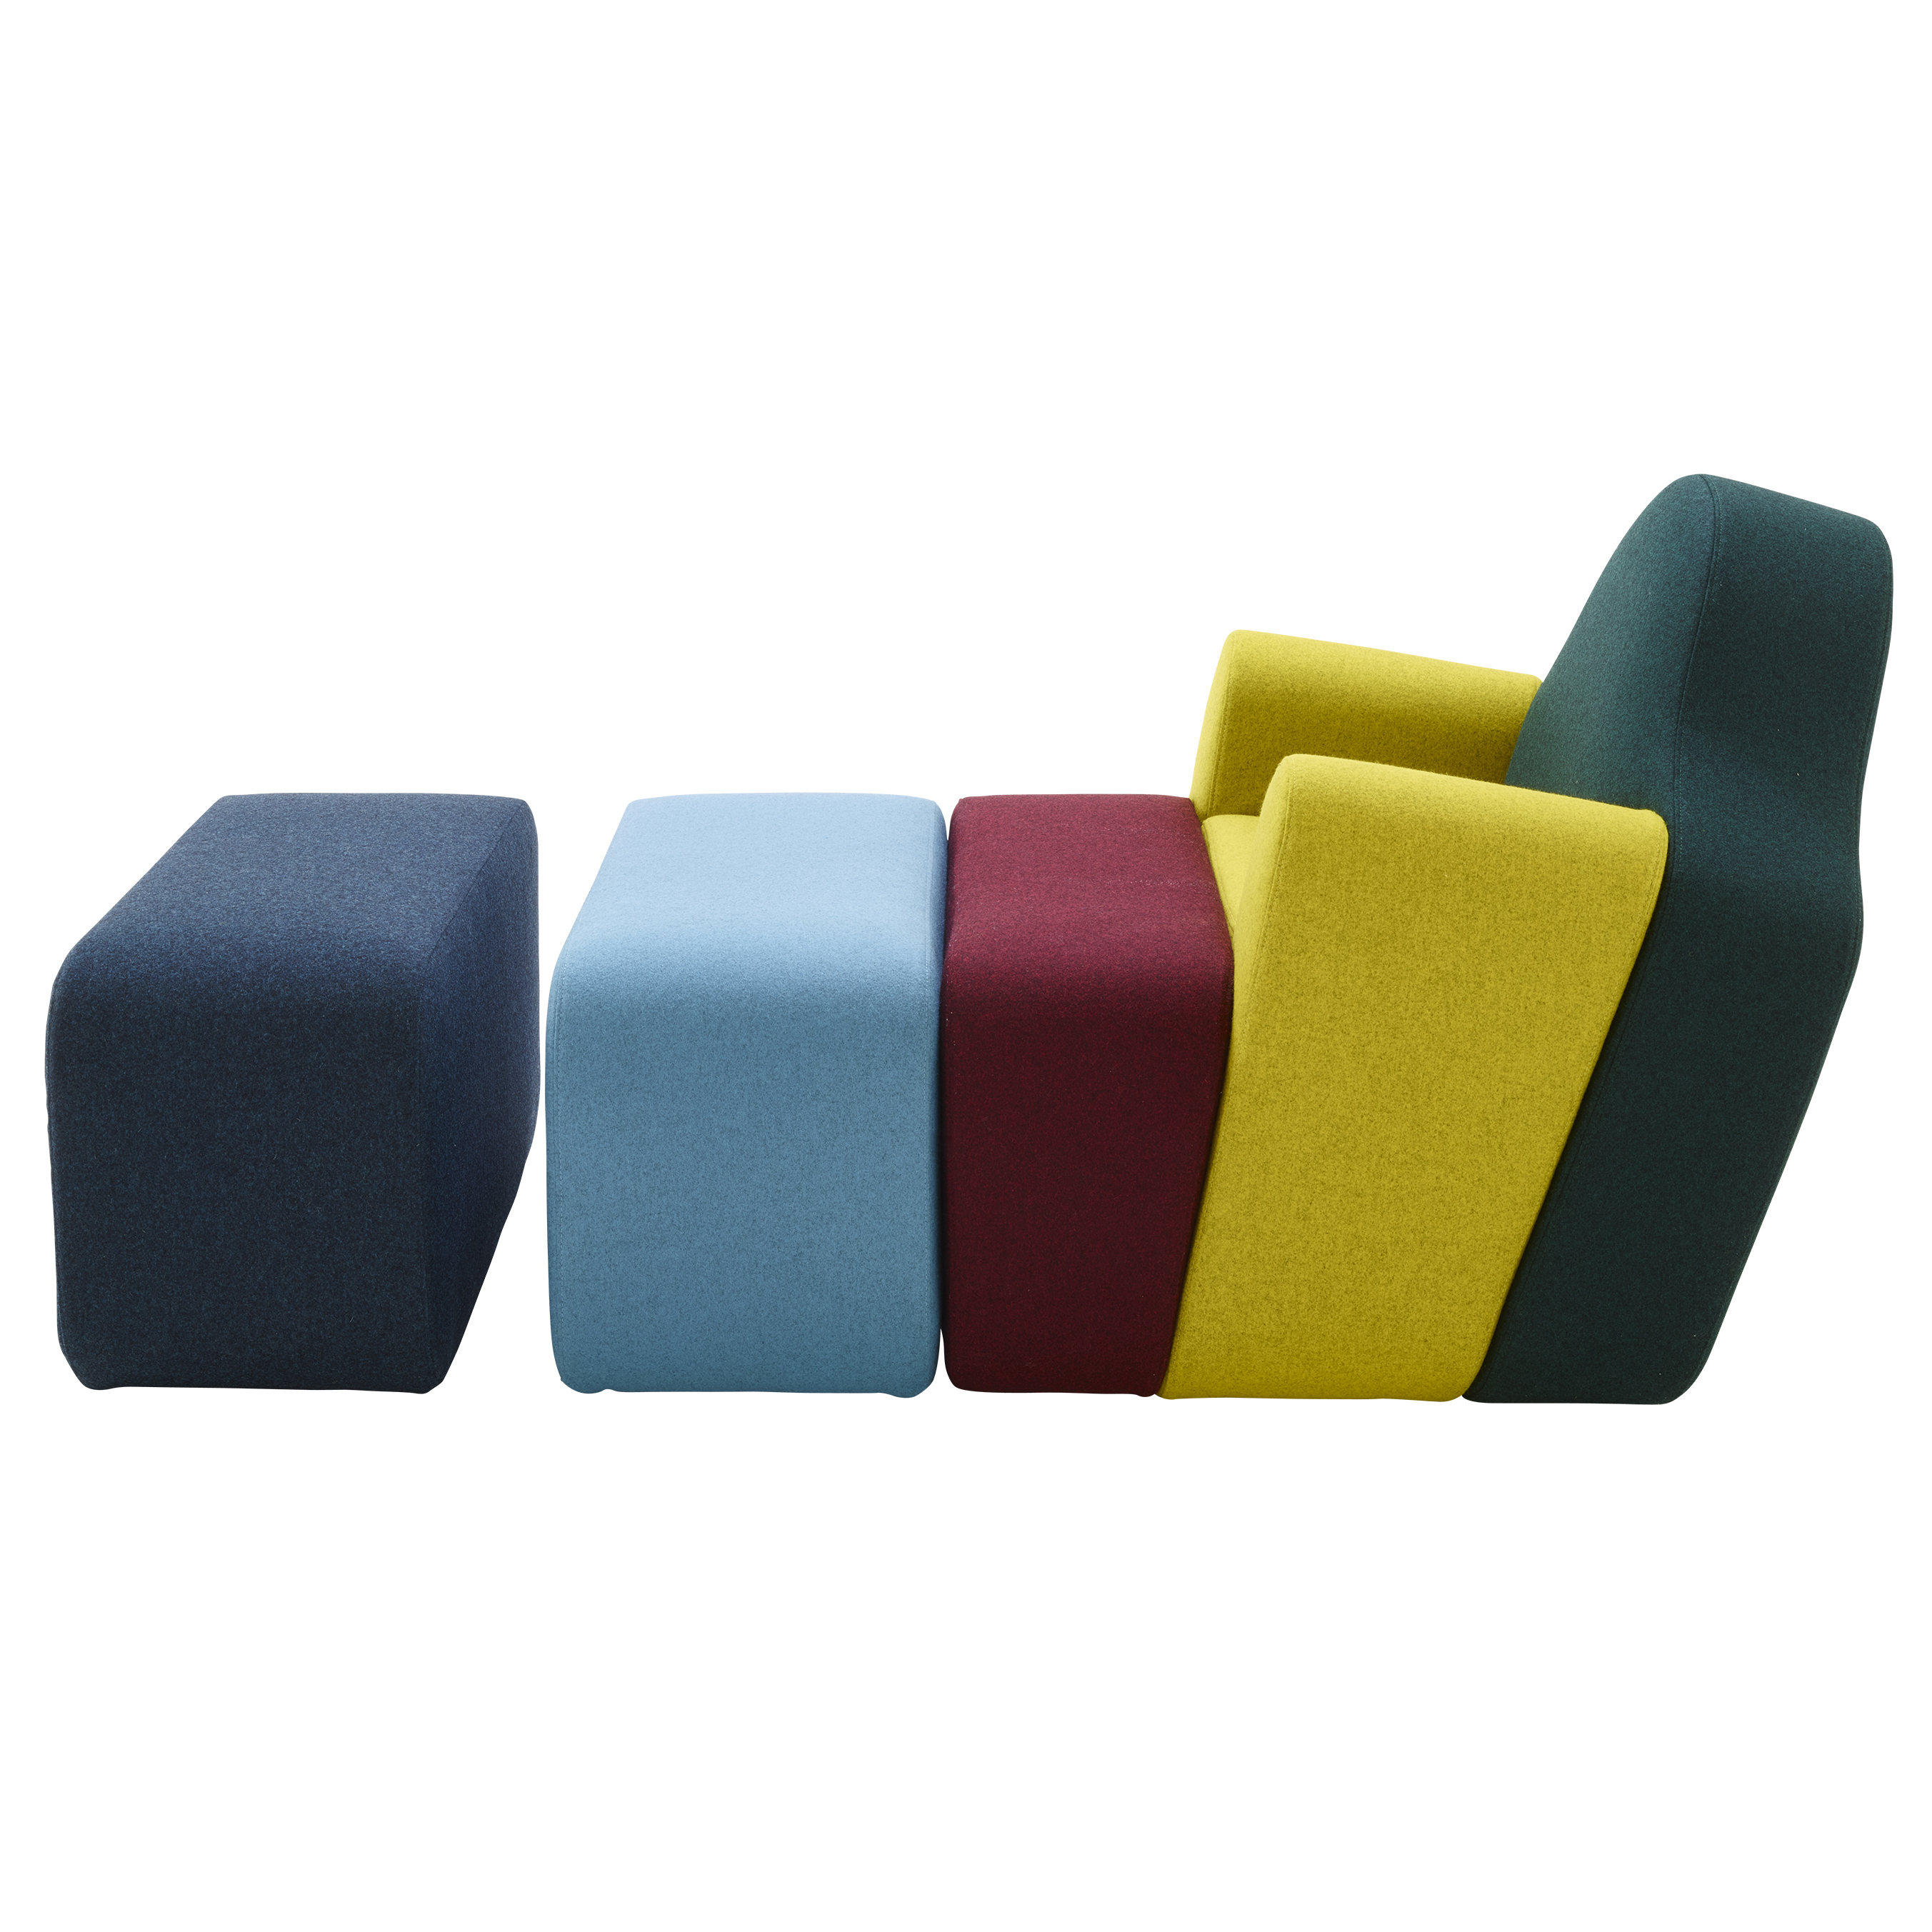 Slice chair by Pierre Charpin for Cinna